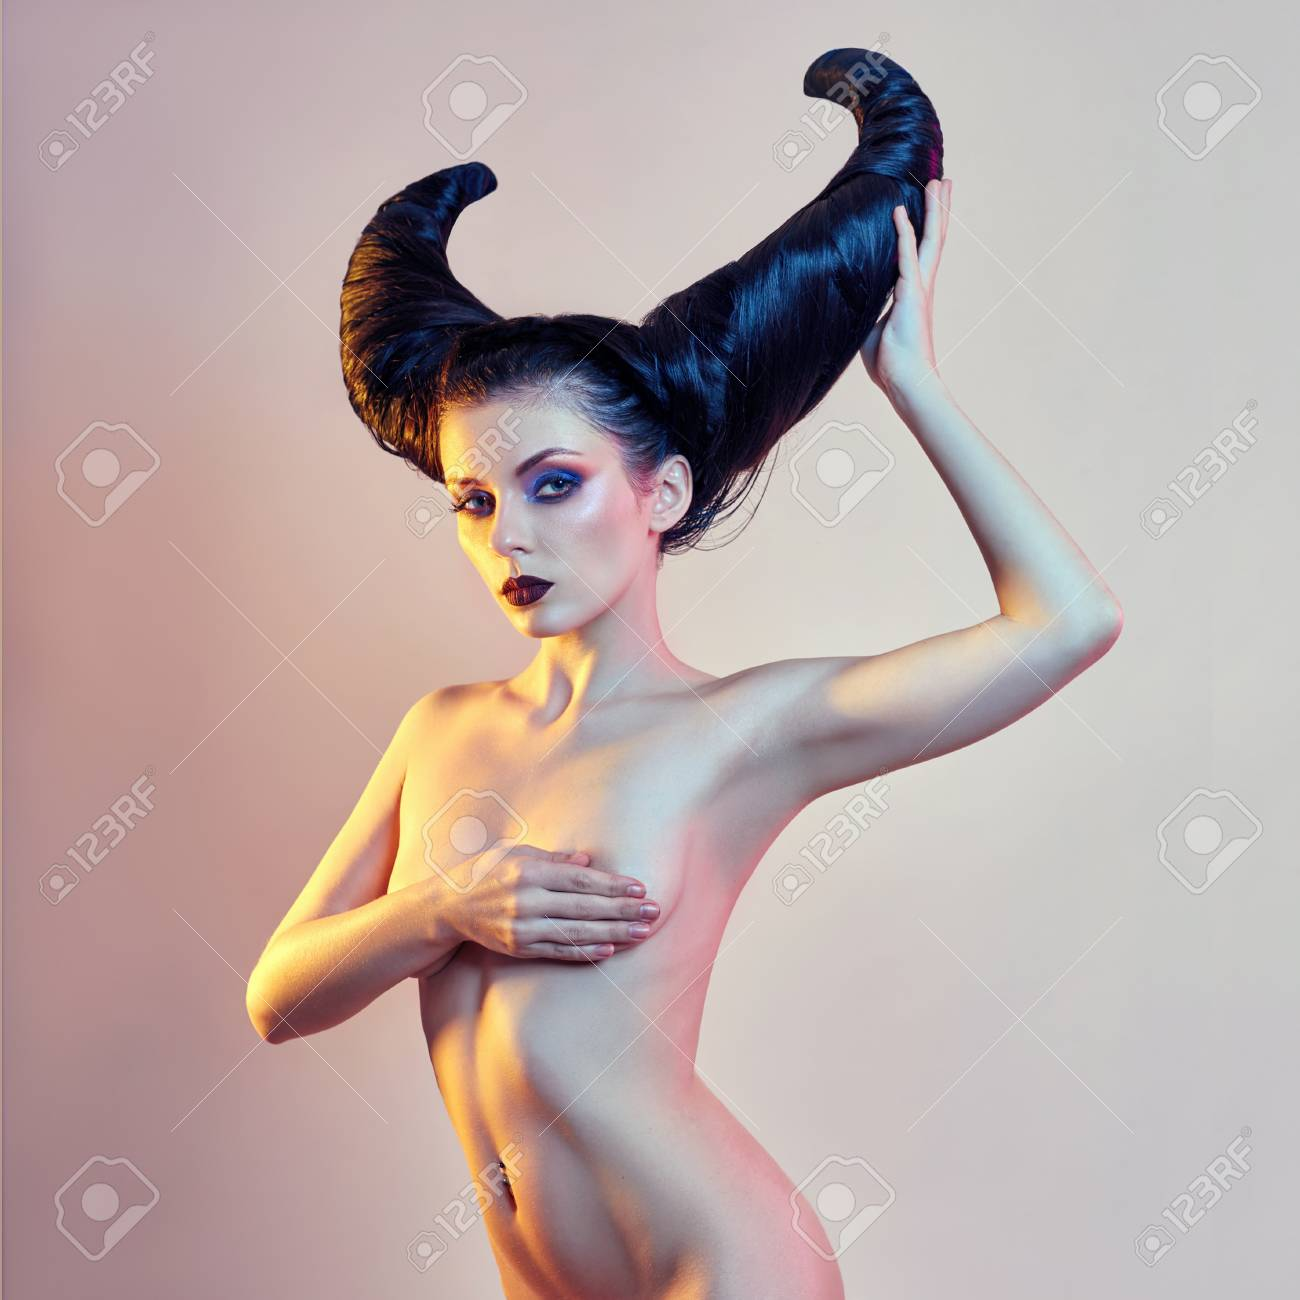 Blk woman nude halloween pic